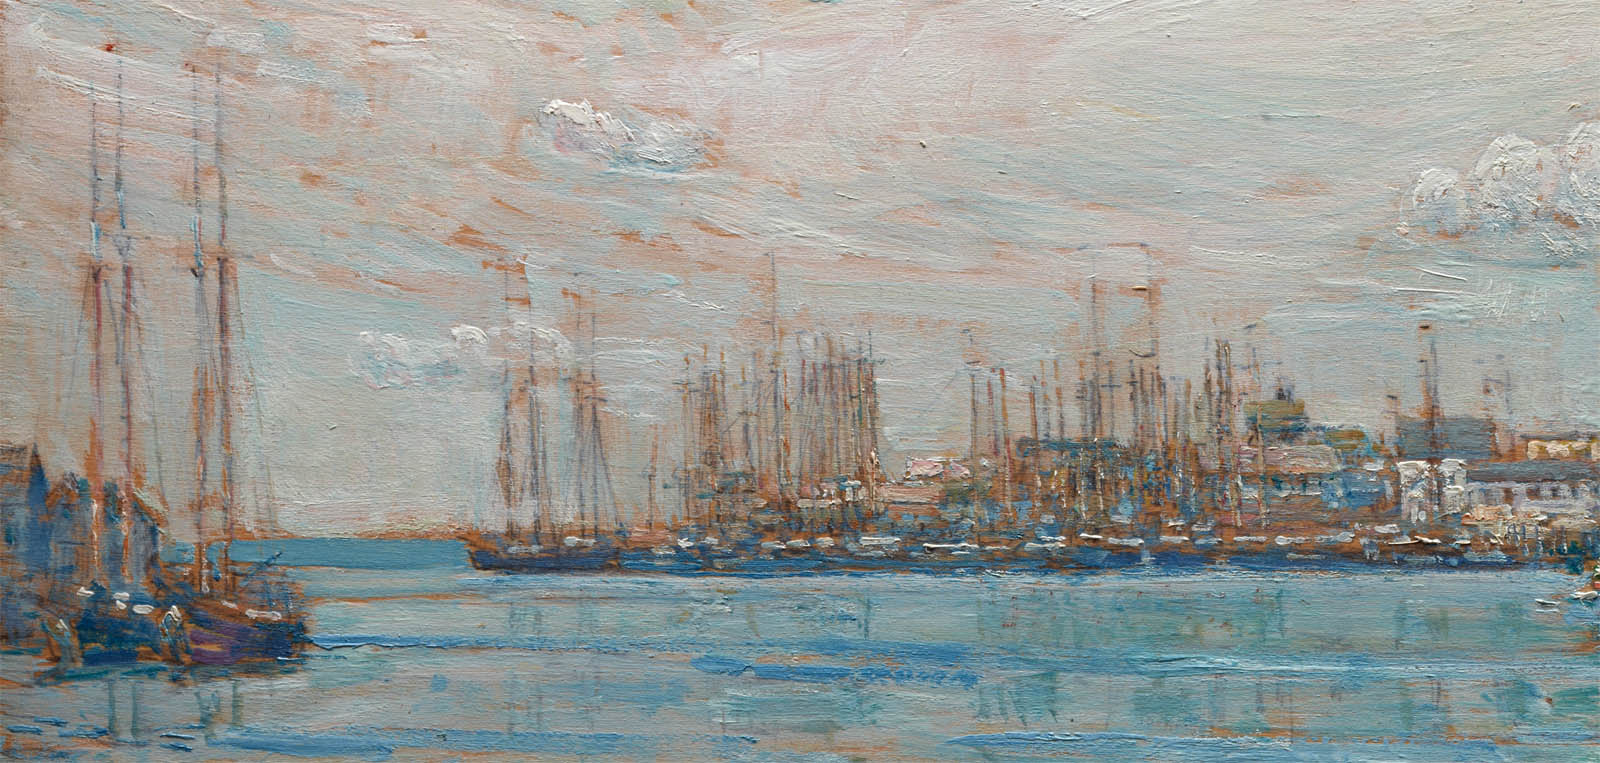 Harbor of a Thousand Masts (1919-d-2)